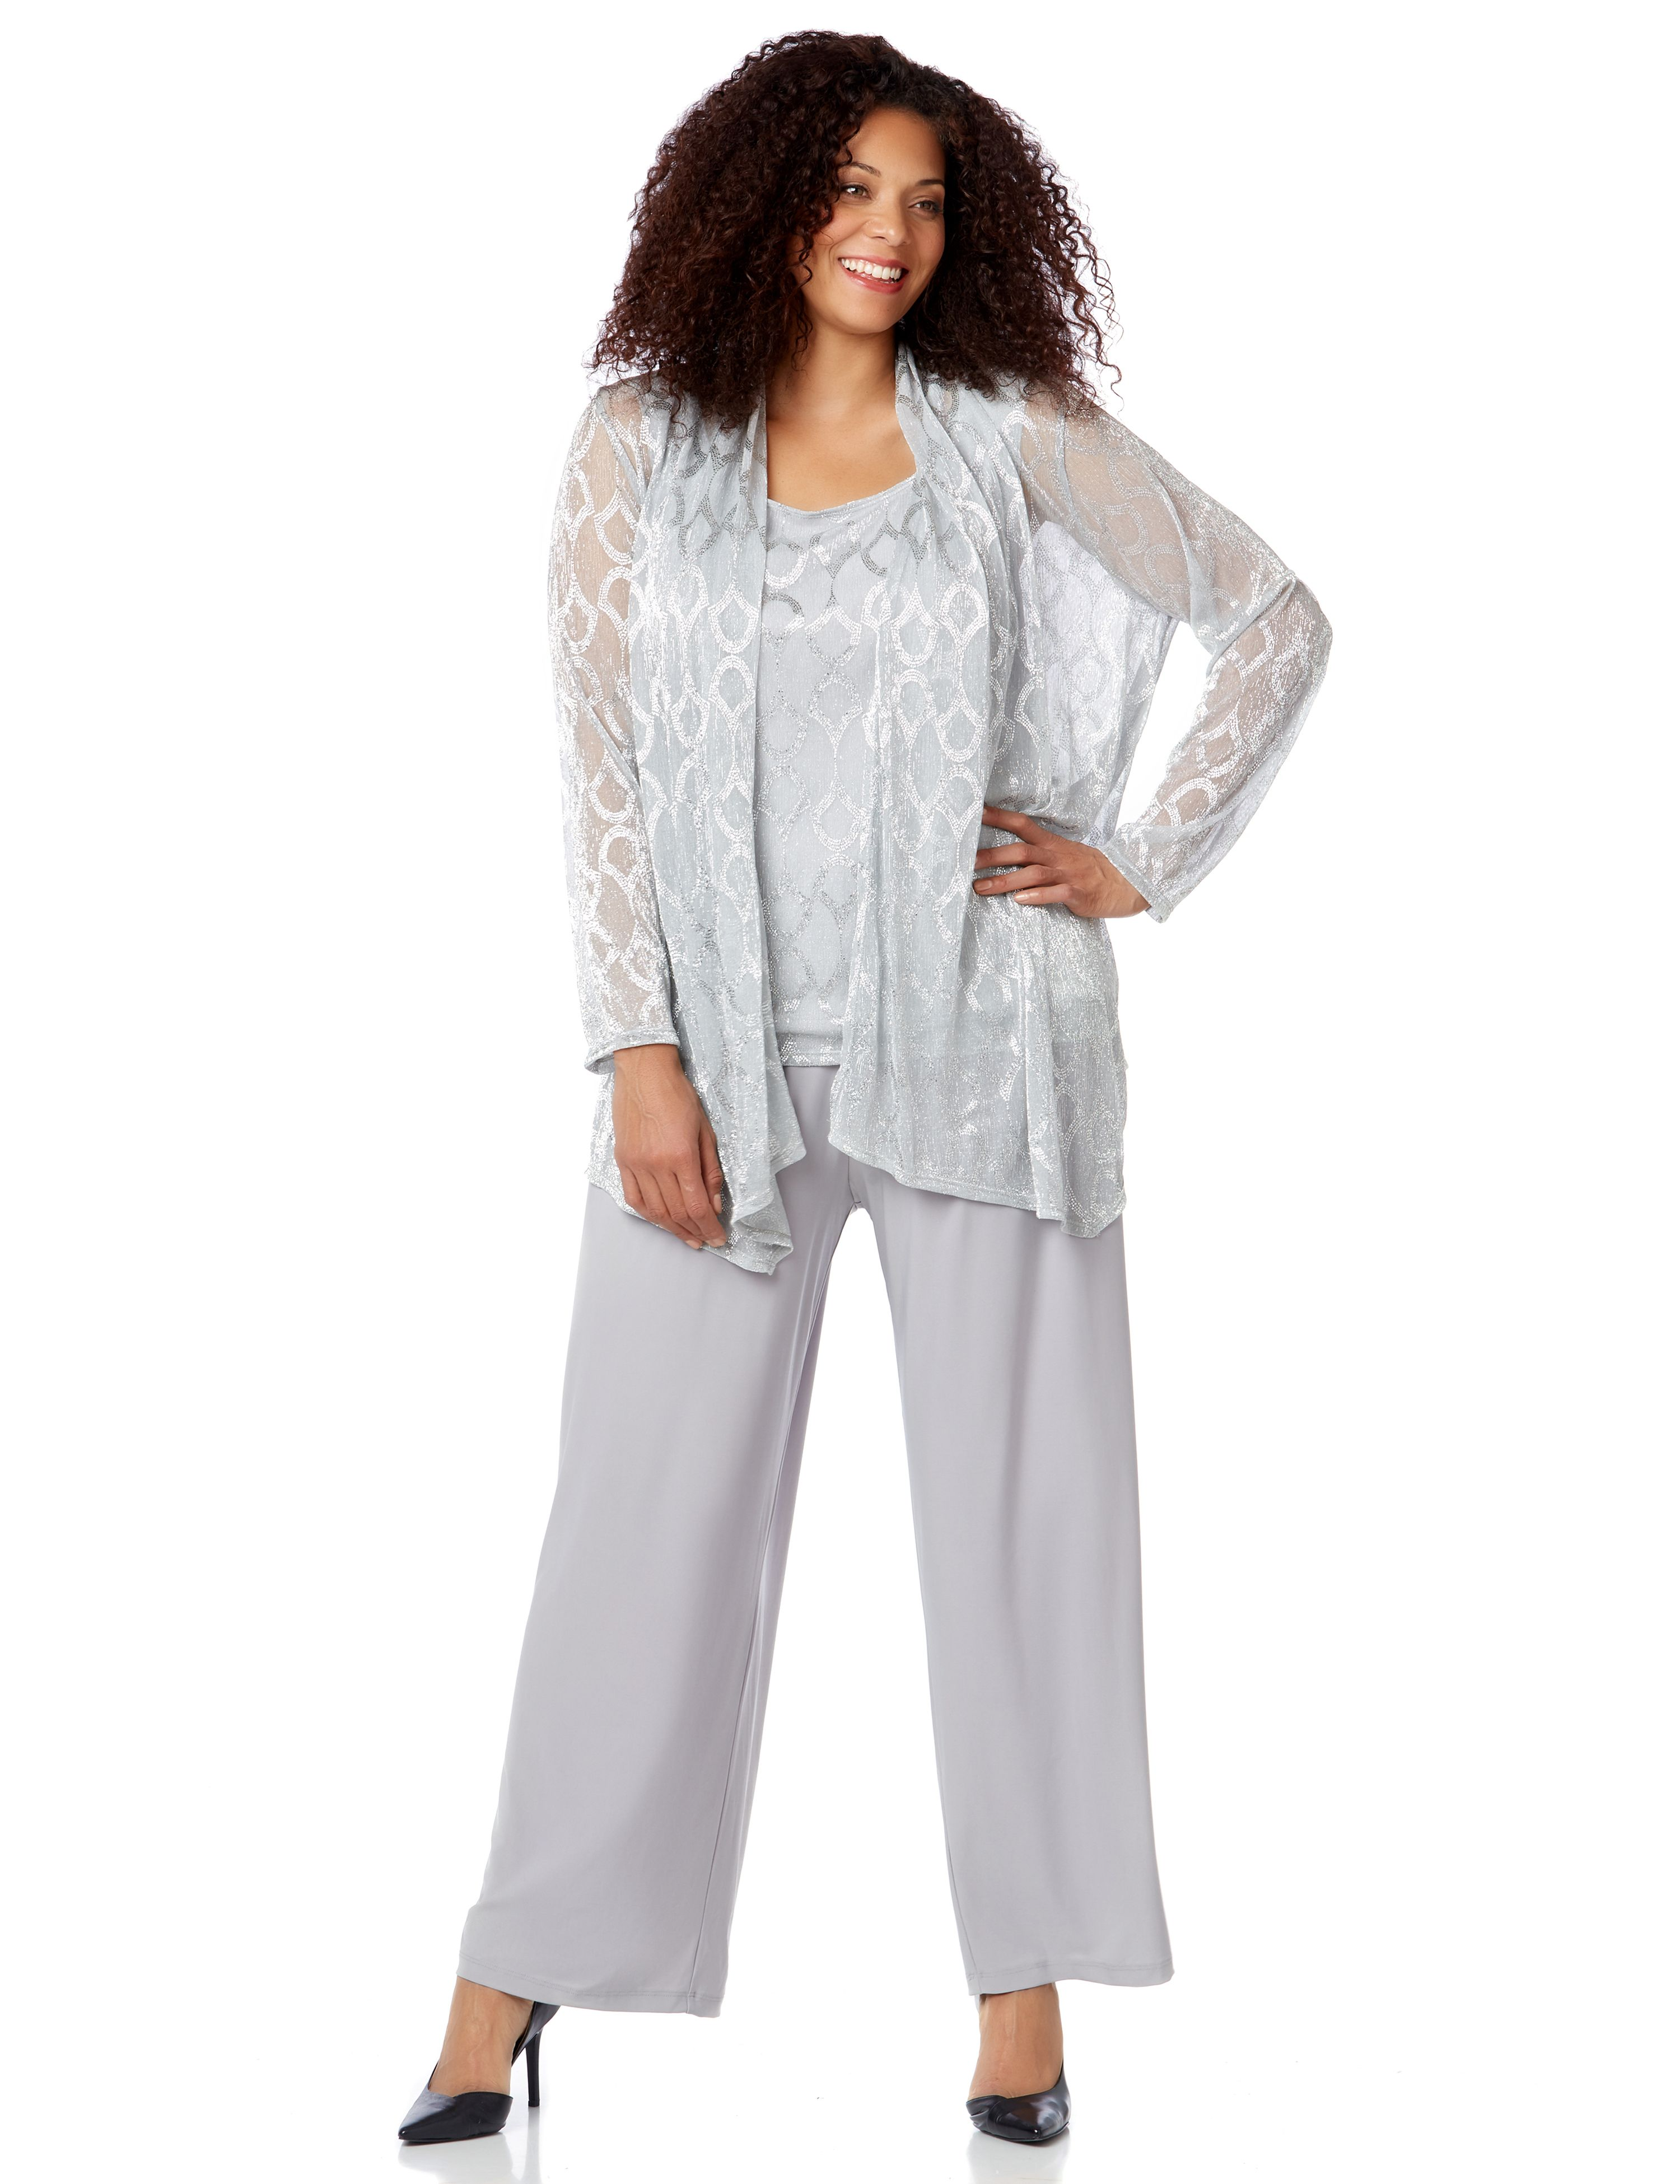 Lightstream Pantsuit 1090987 3 PC Metallic Knit Open Cas MP-300096164